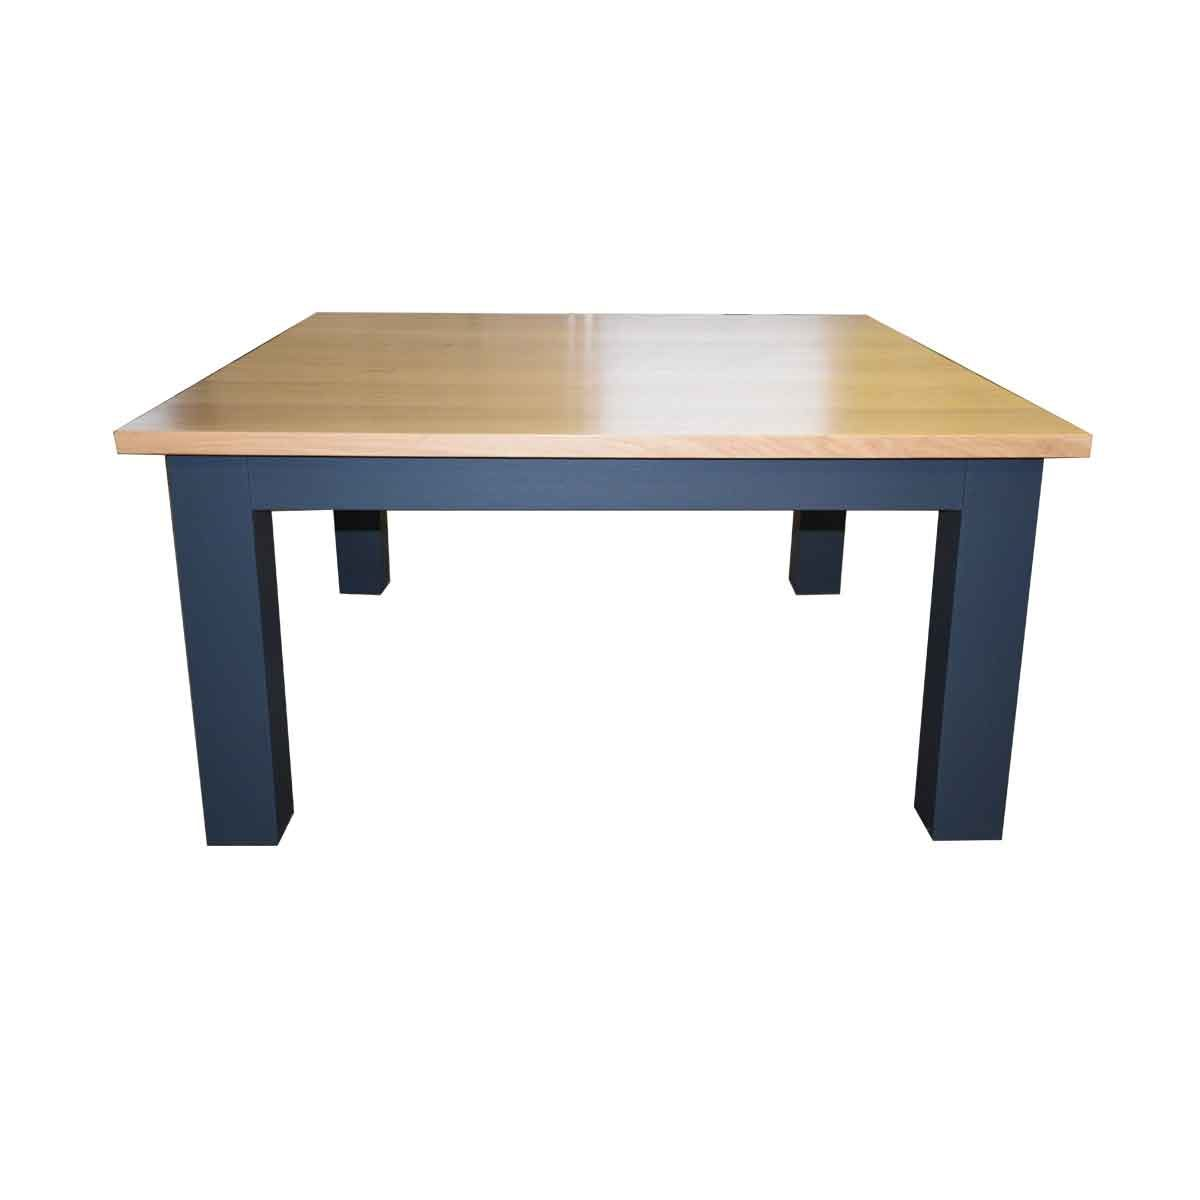 Bespoke Kent Dining Table Handcrafted in Suffolk